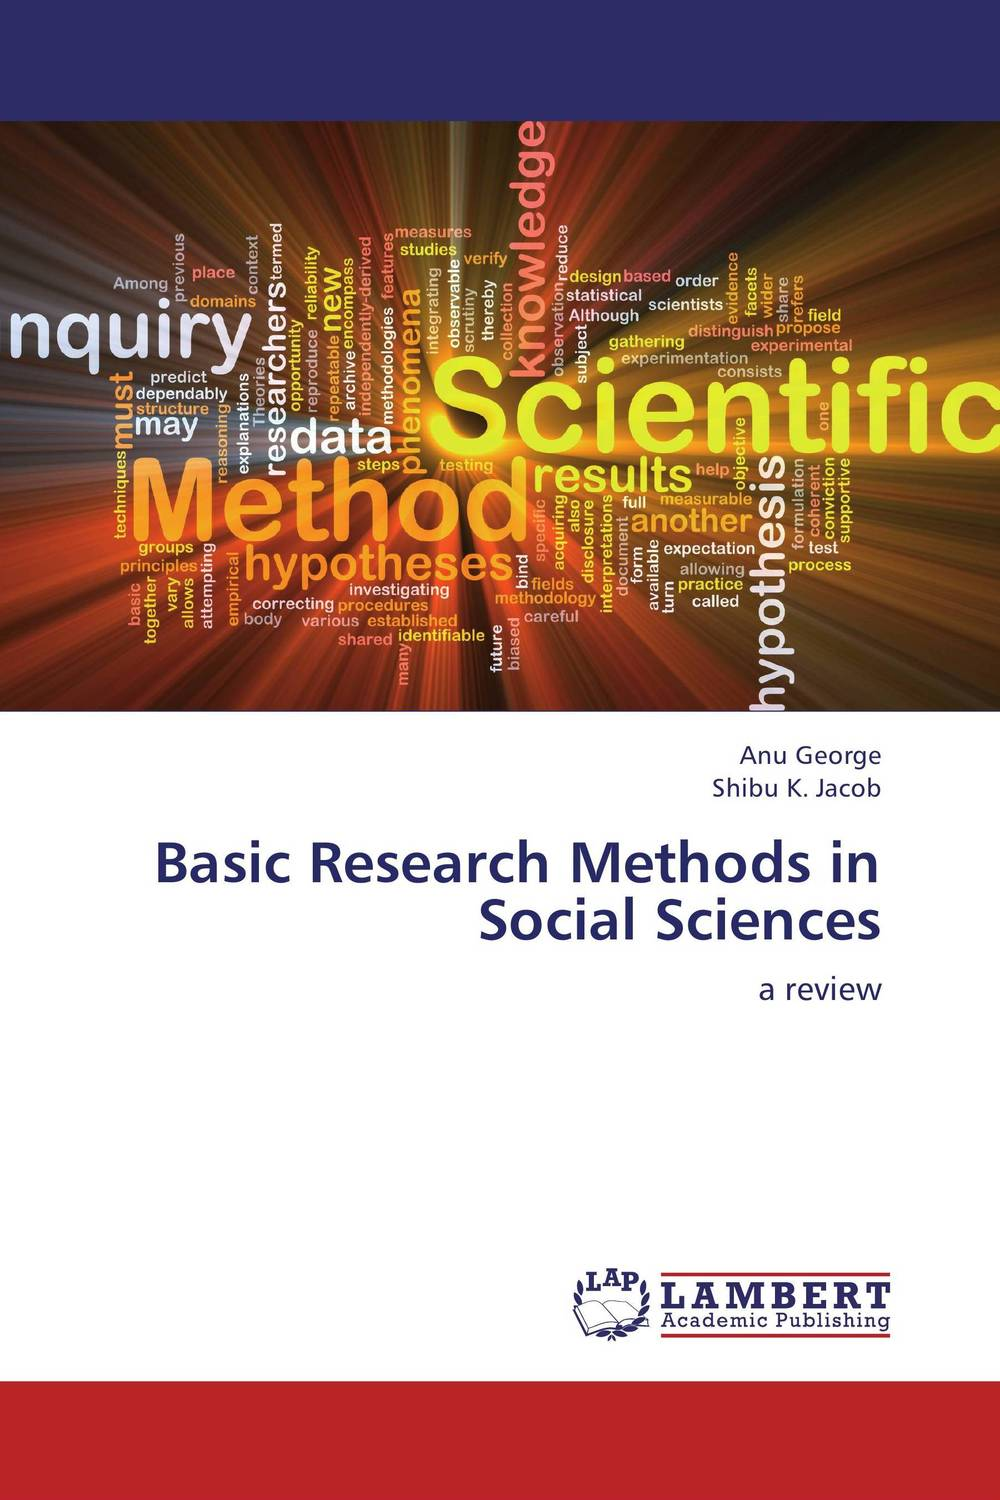 Basic Research Methods in Social Sciences